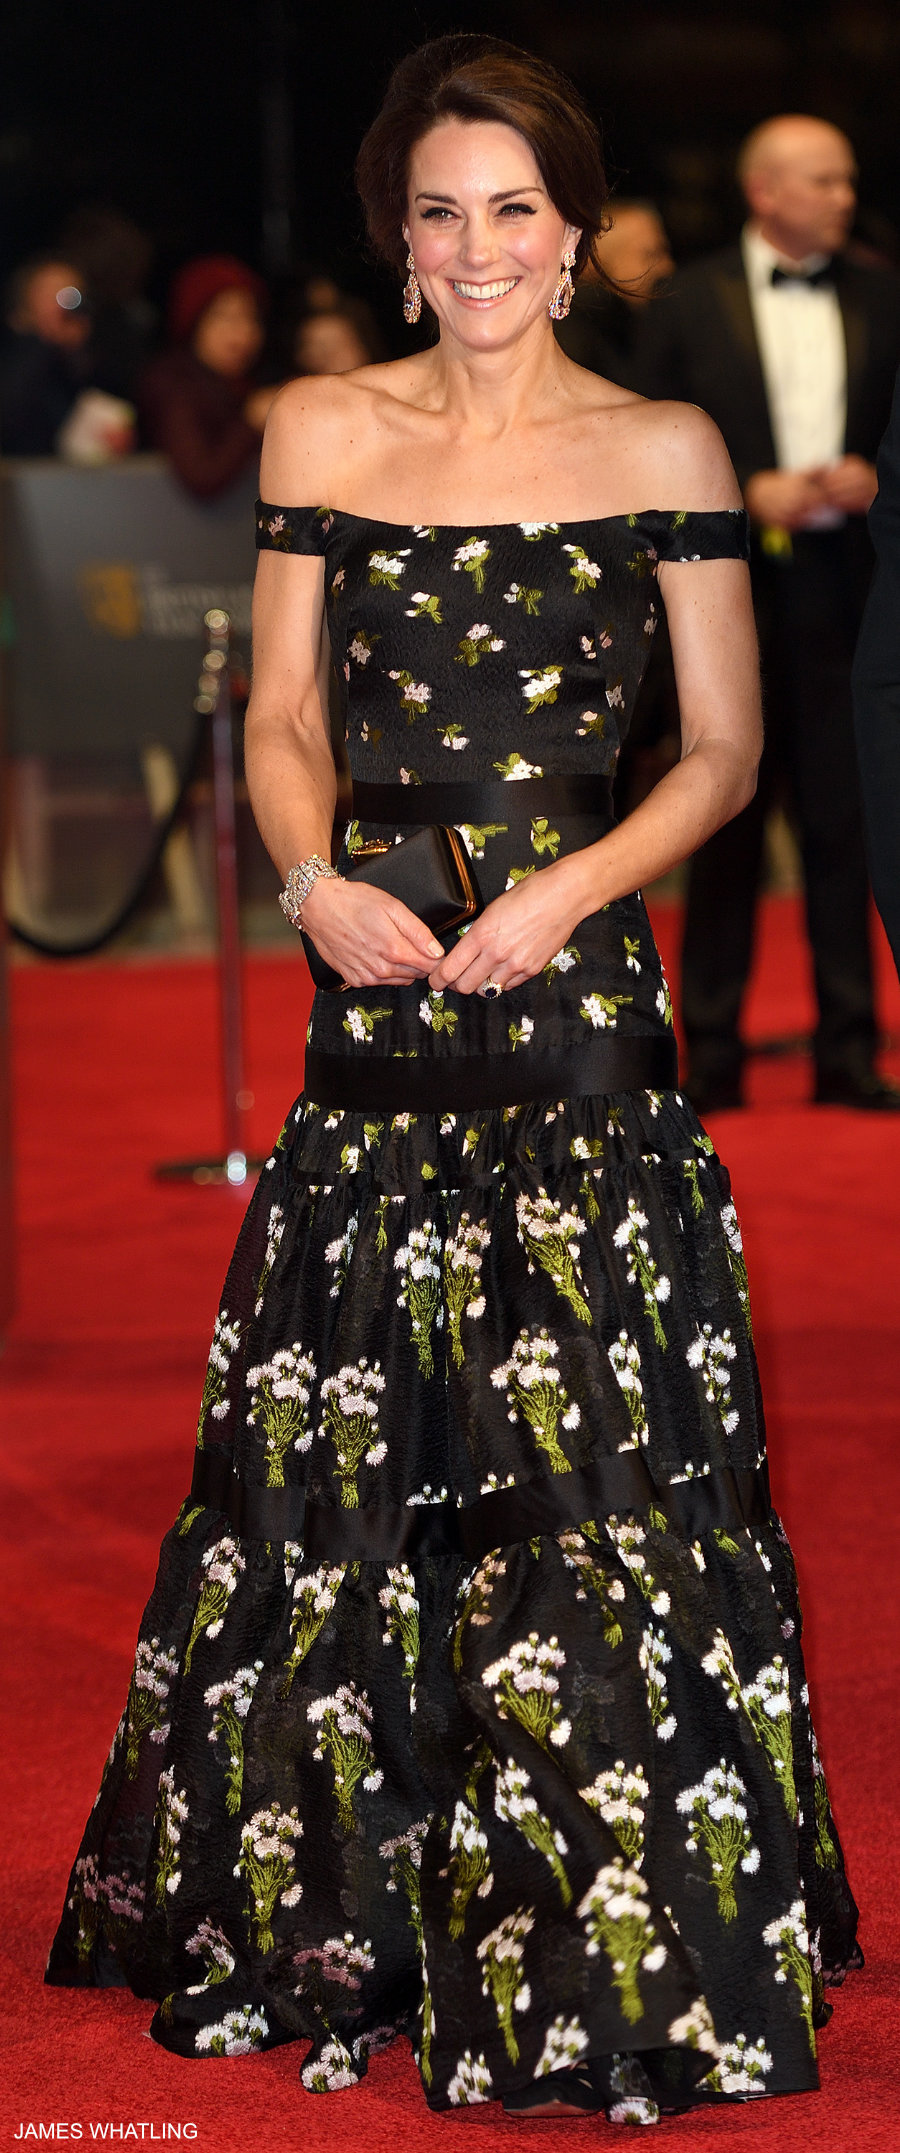 Kate Middleton wearing an Alexander McQueen gown at the BAFTAS